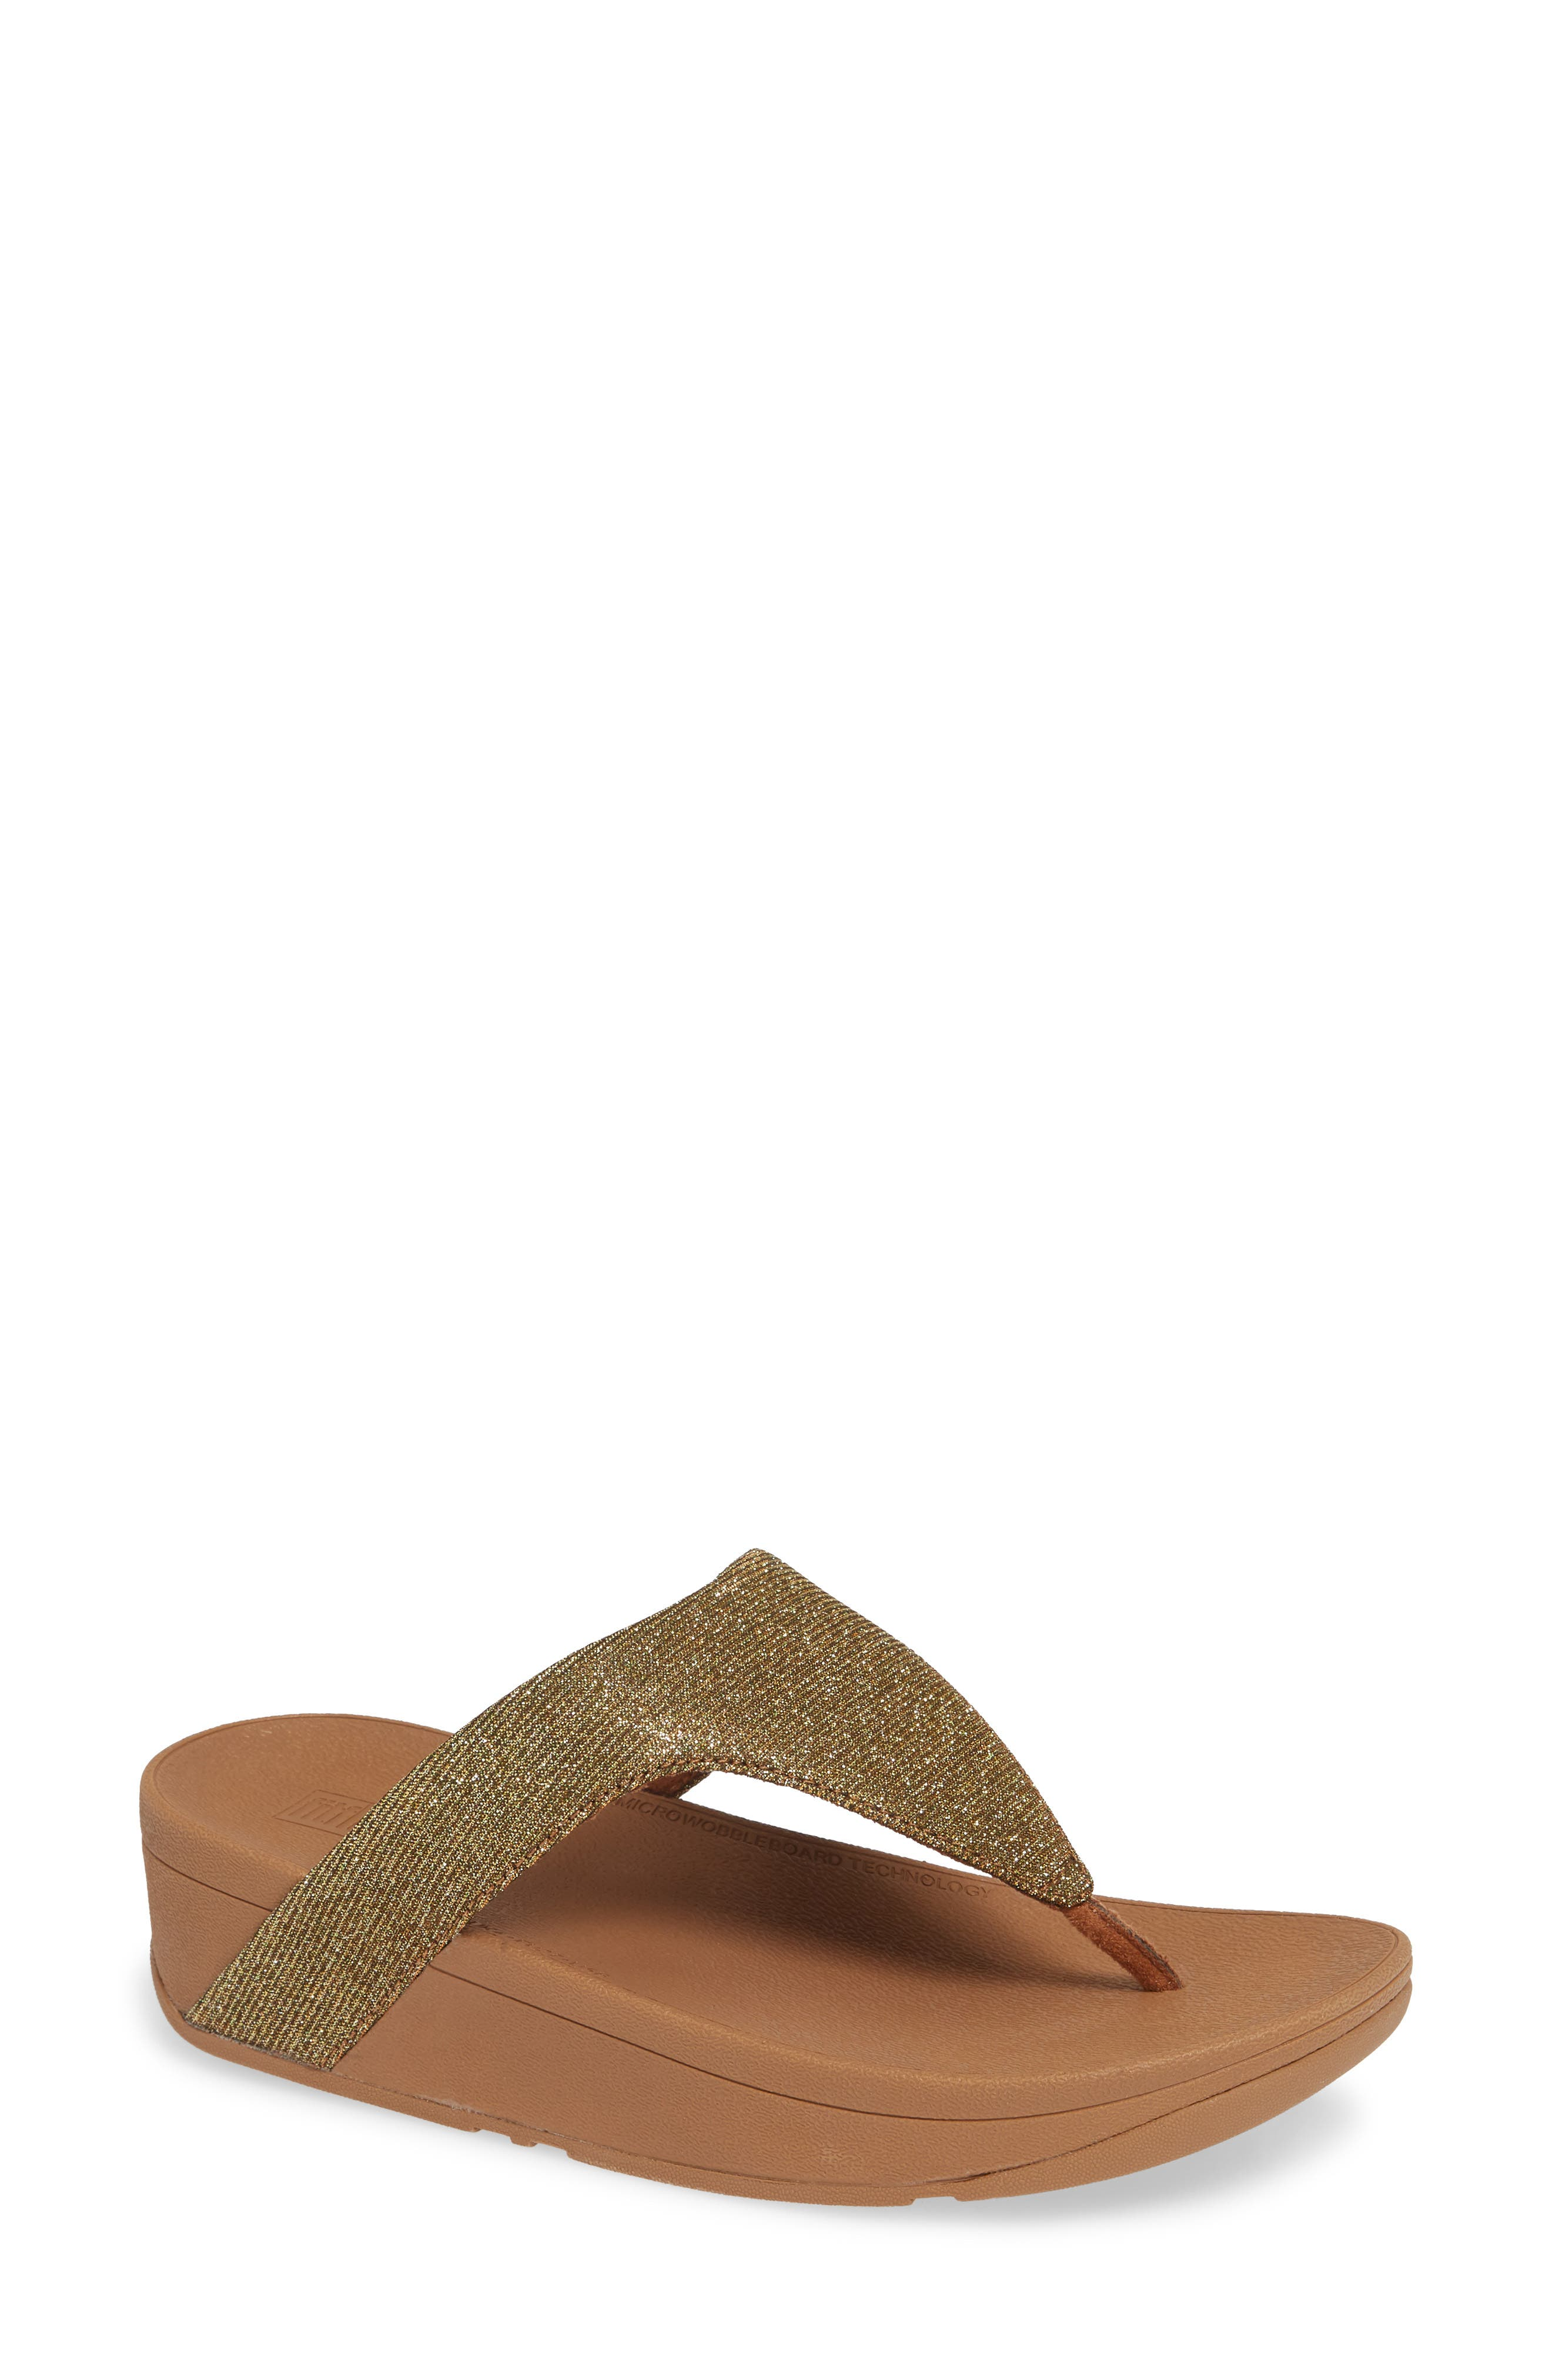 FITFLOP, Lottie Glitzy Wedge Flip Flop, Main thumbnail 1, color, ARTISAN GOLD